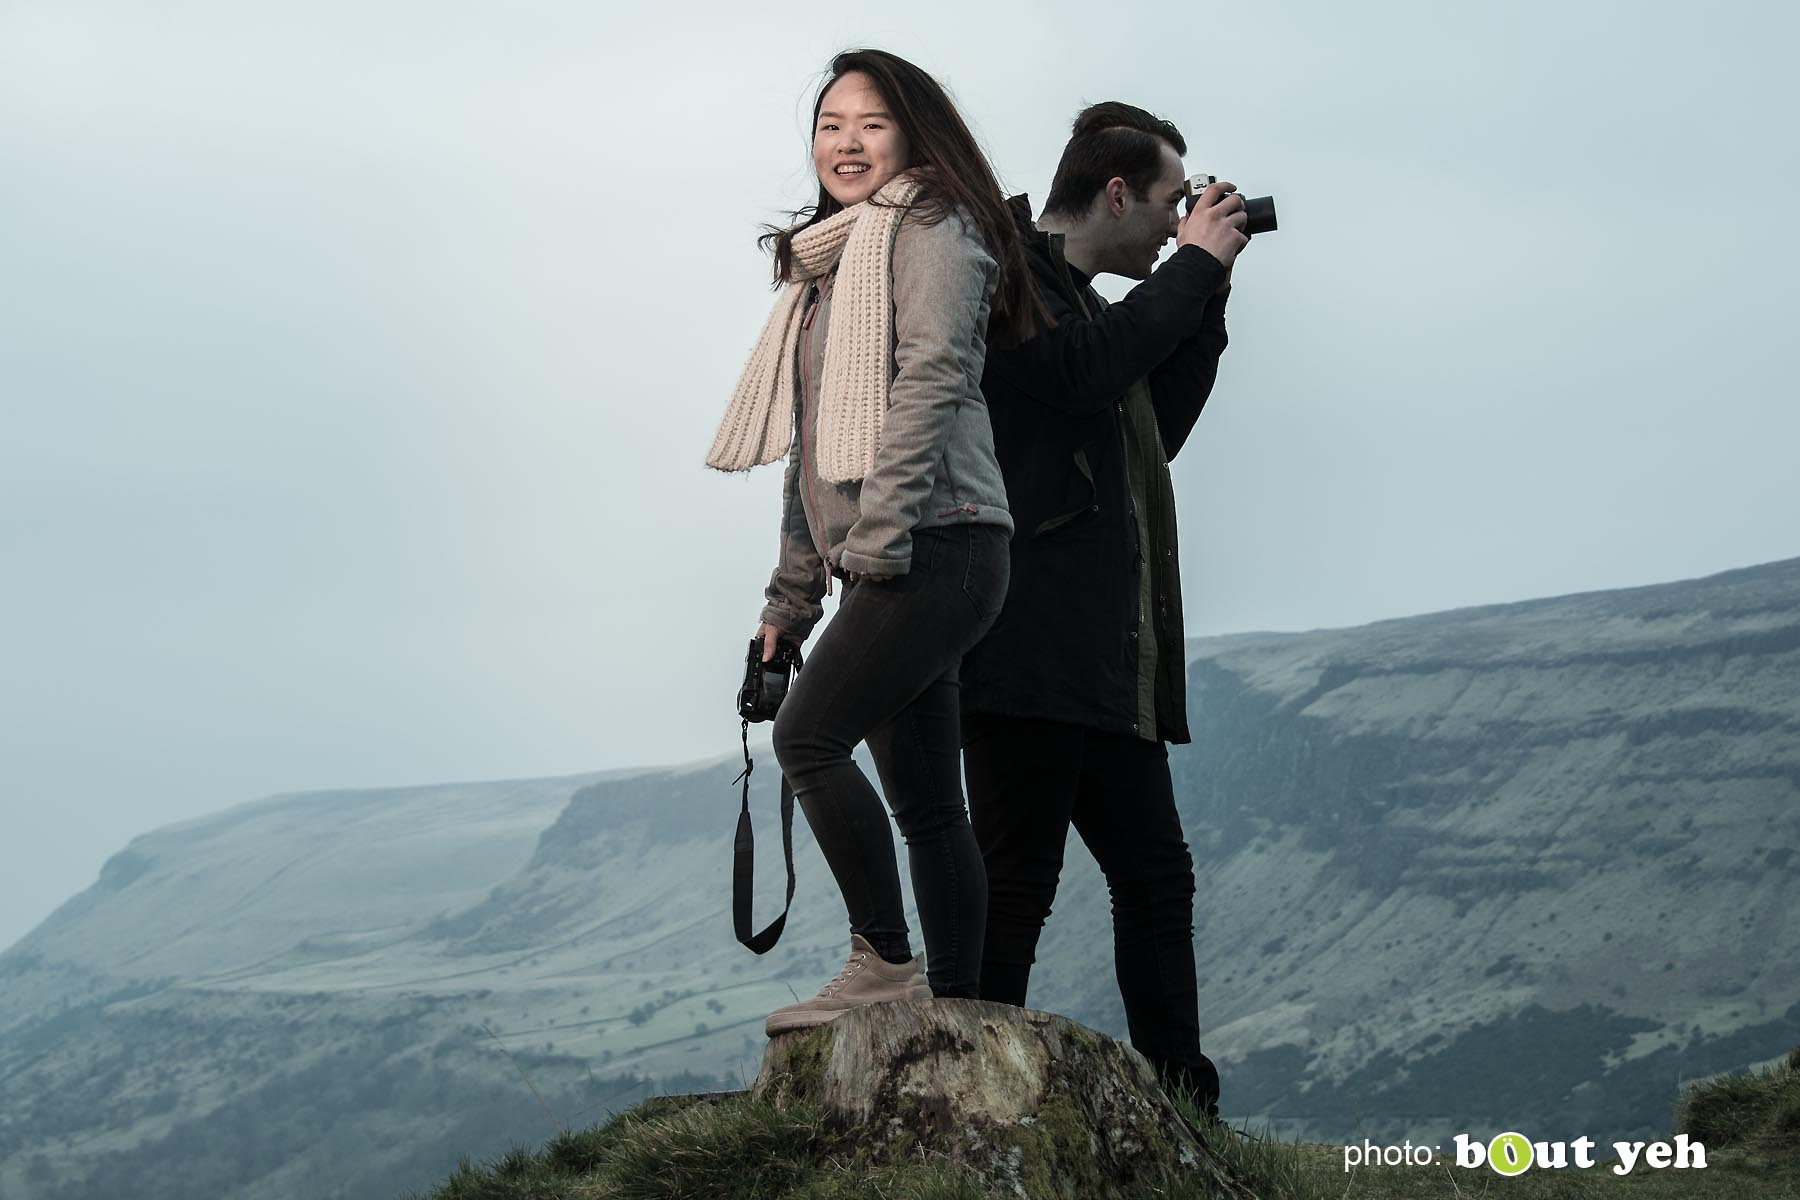 Maikel and Mai-Lin, Glenariff Forest, Northern Ireland. Photo 0647.